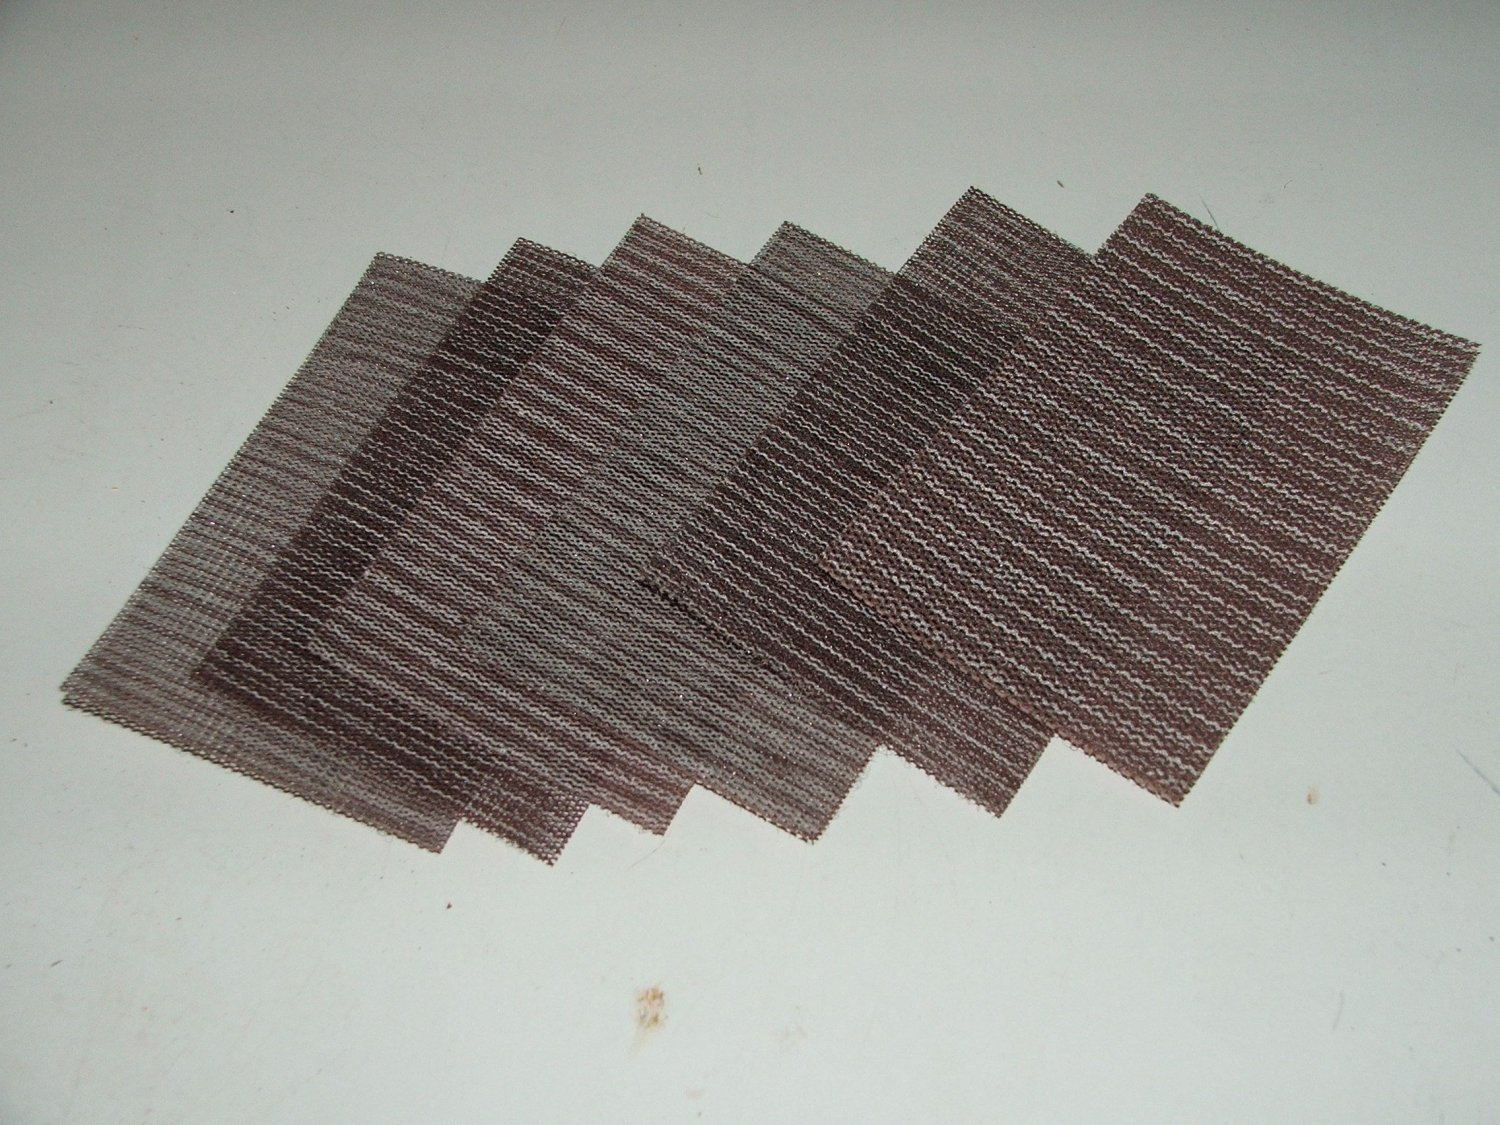 20 packets ABRANET 80, 120, 180, 240, 320, 400